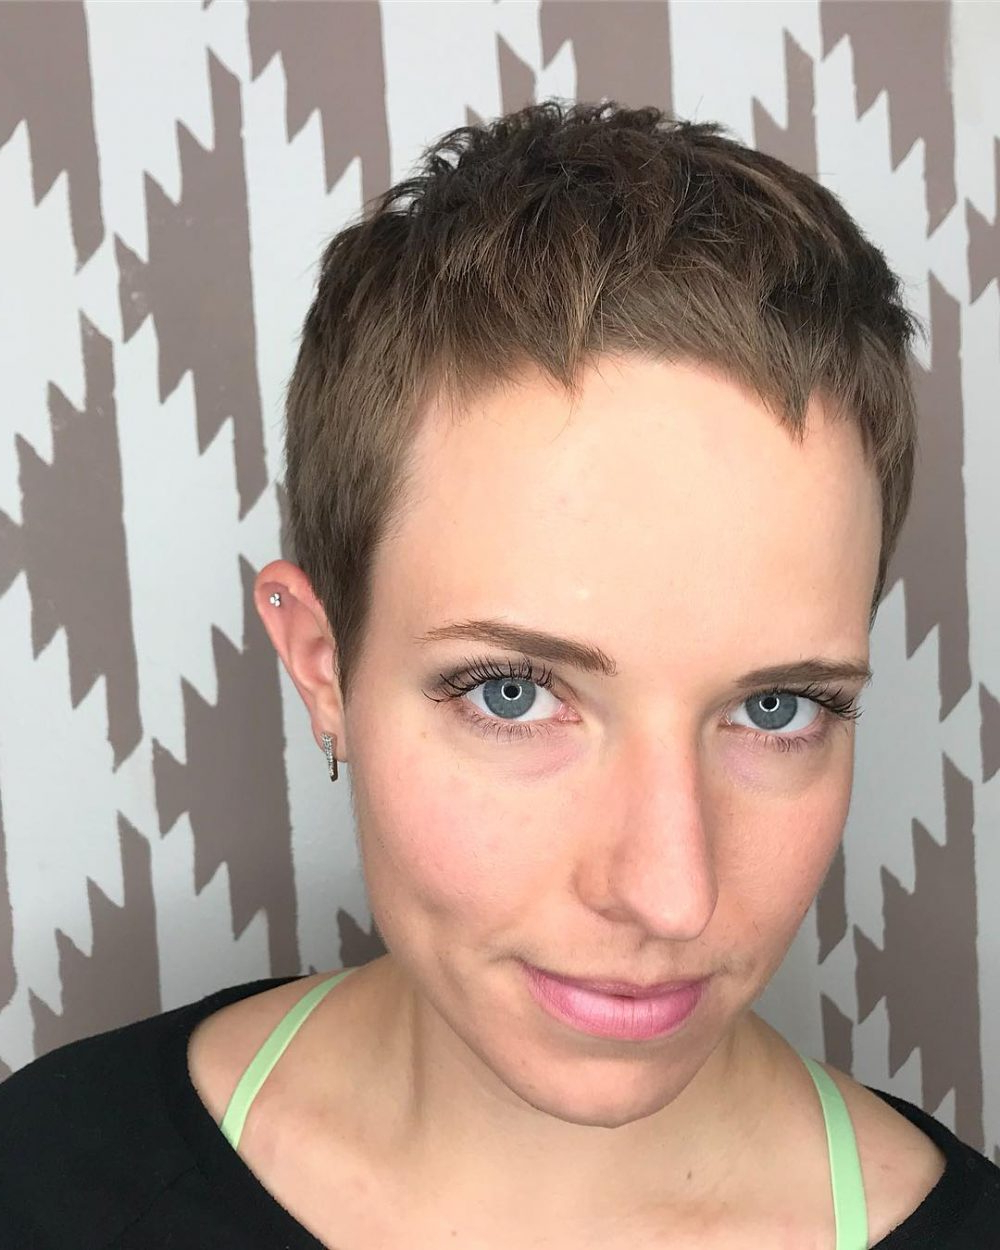 27 Very Short Haircuts You Have To See In 2018 With Disconnected Pixie Hairstyles For Short Hair (View 7 of 20)